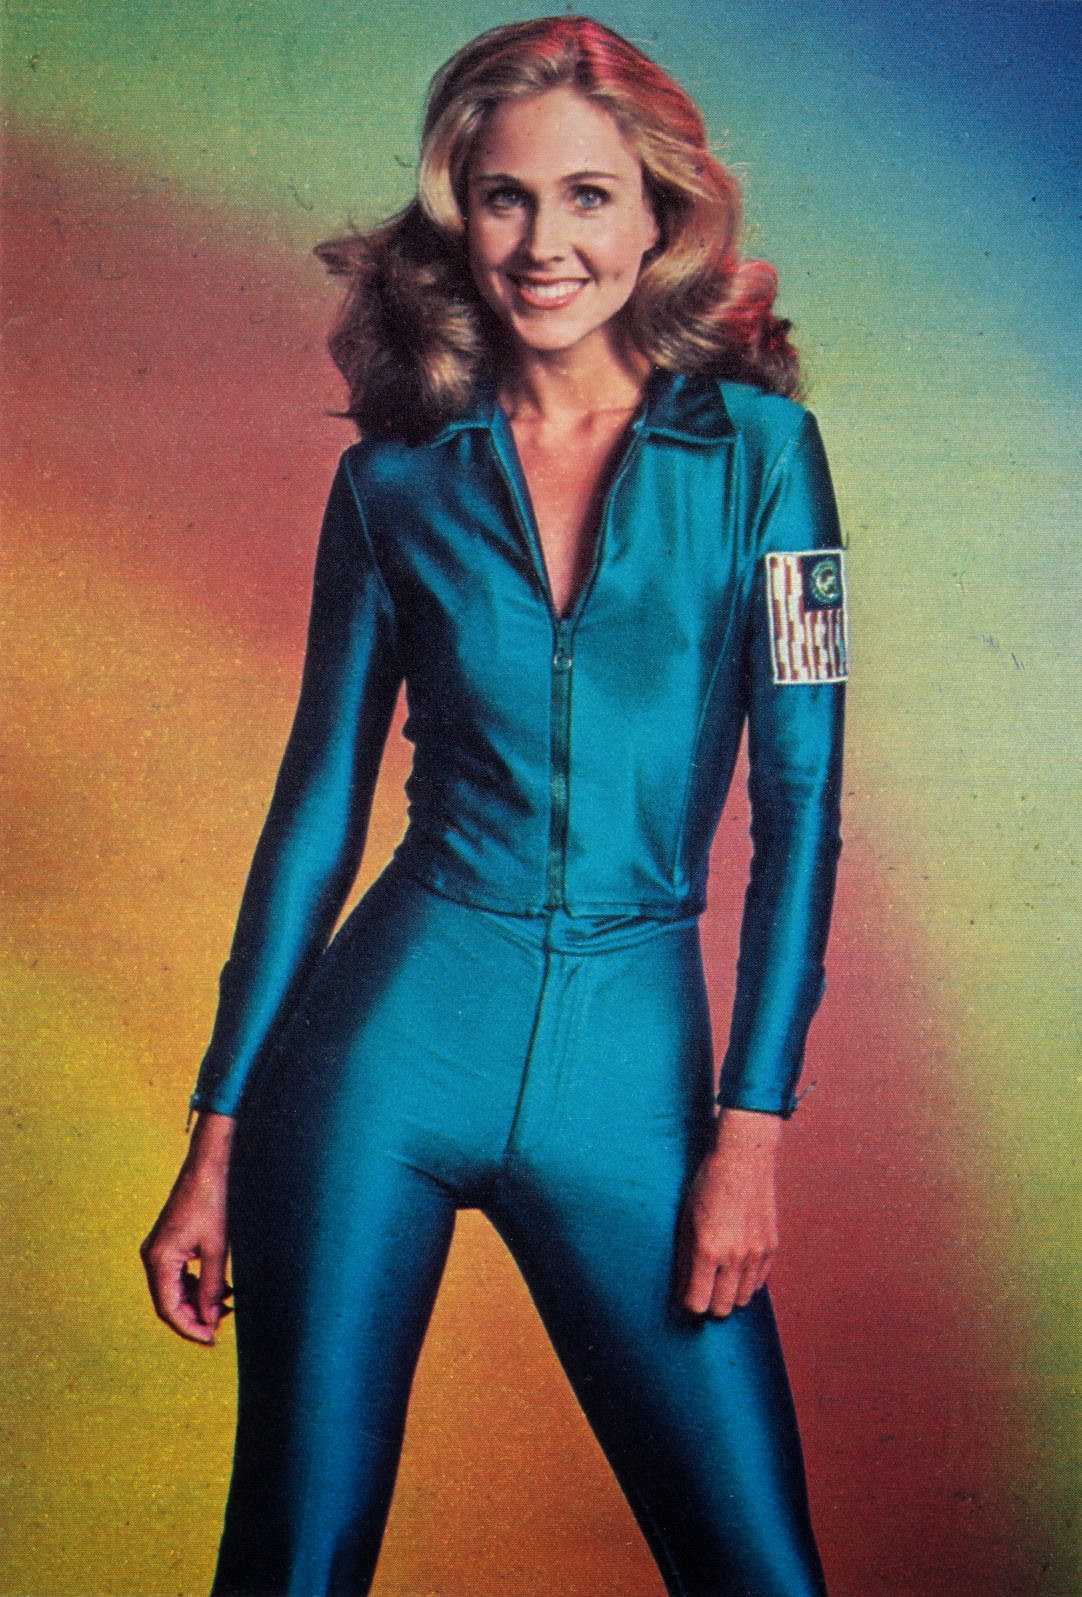 Erin gray buck rogers absolutely agree